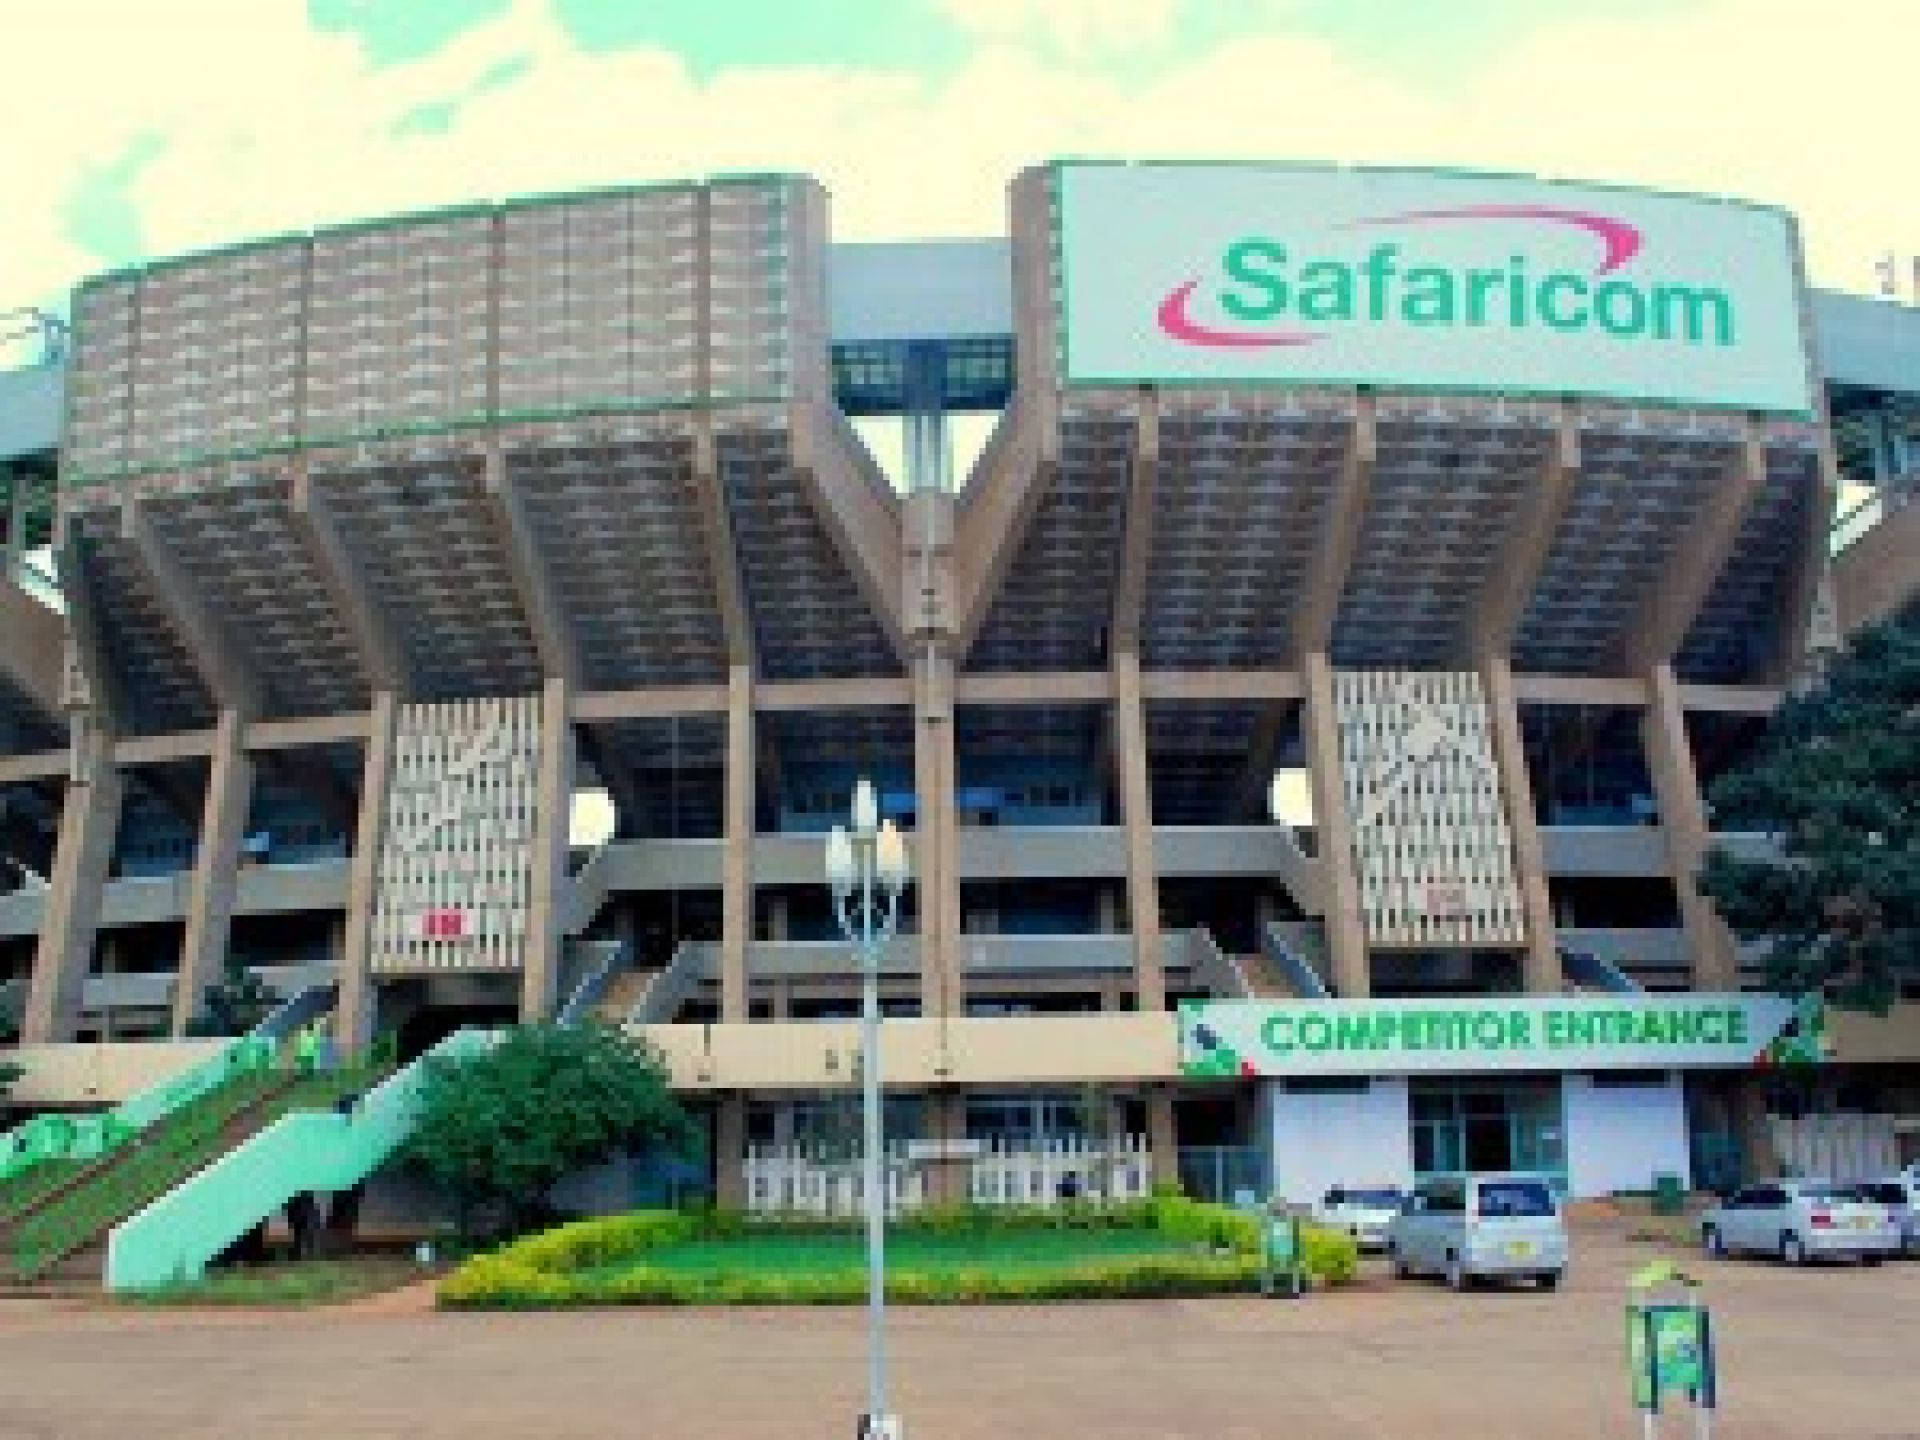 Google joins Safaricom on its latest digital campaign in Kenya